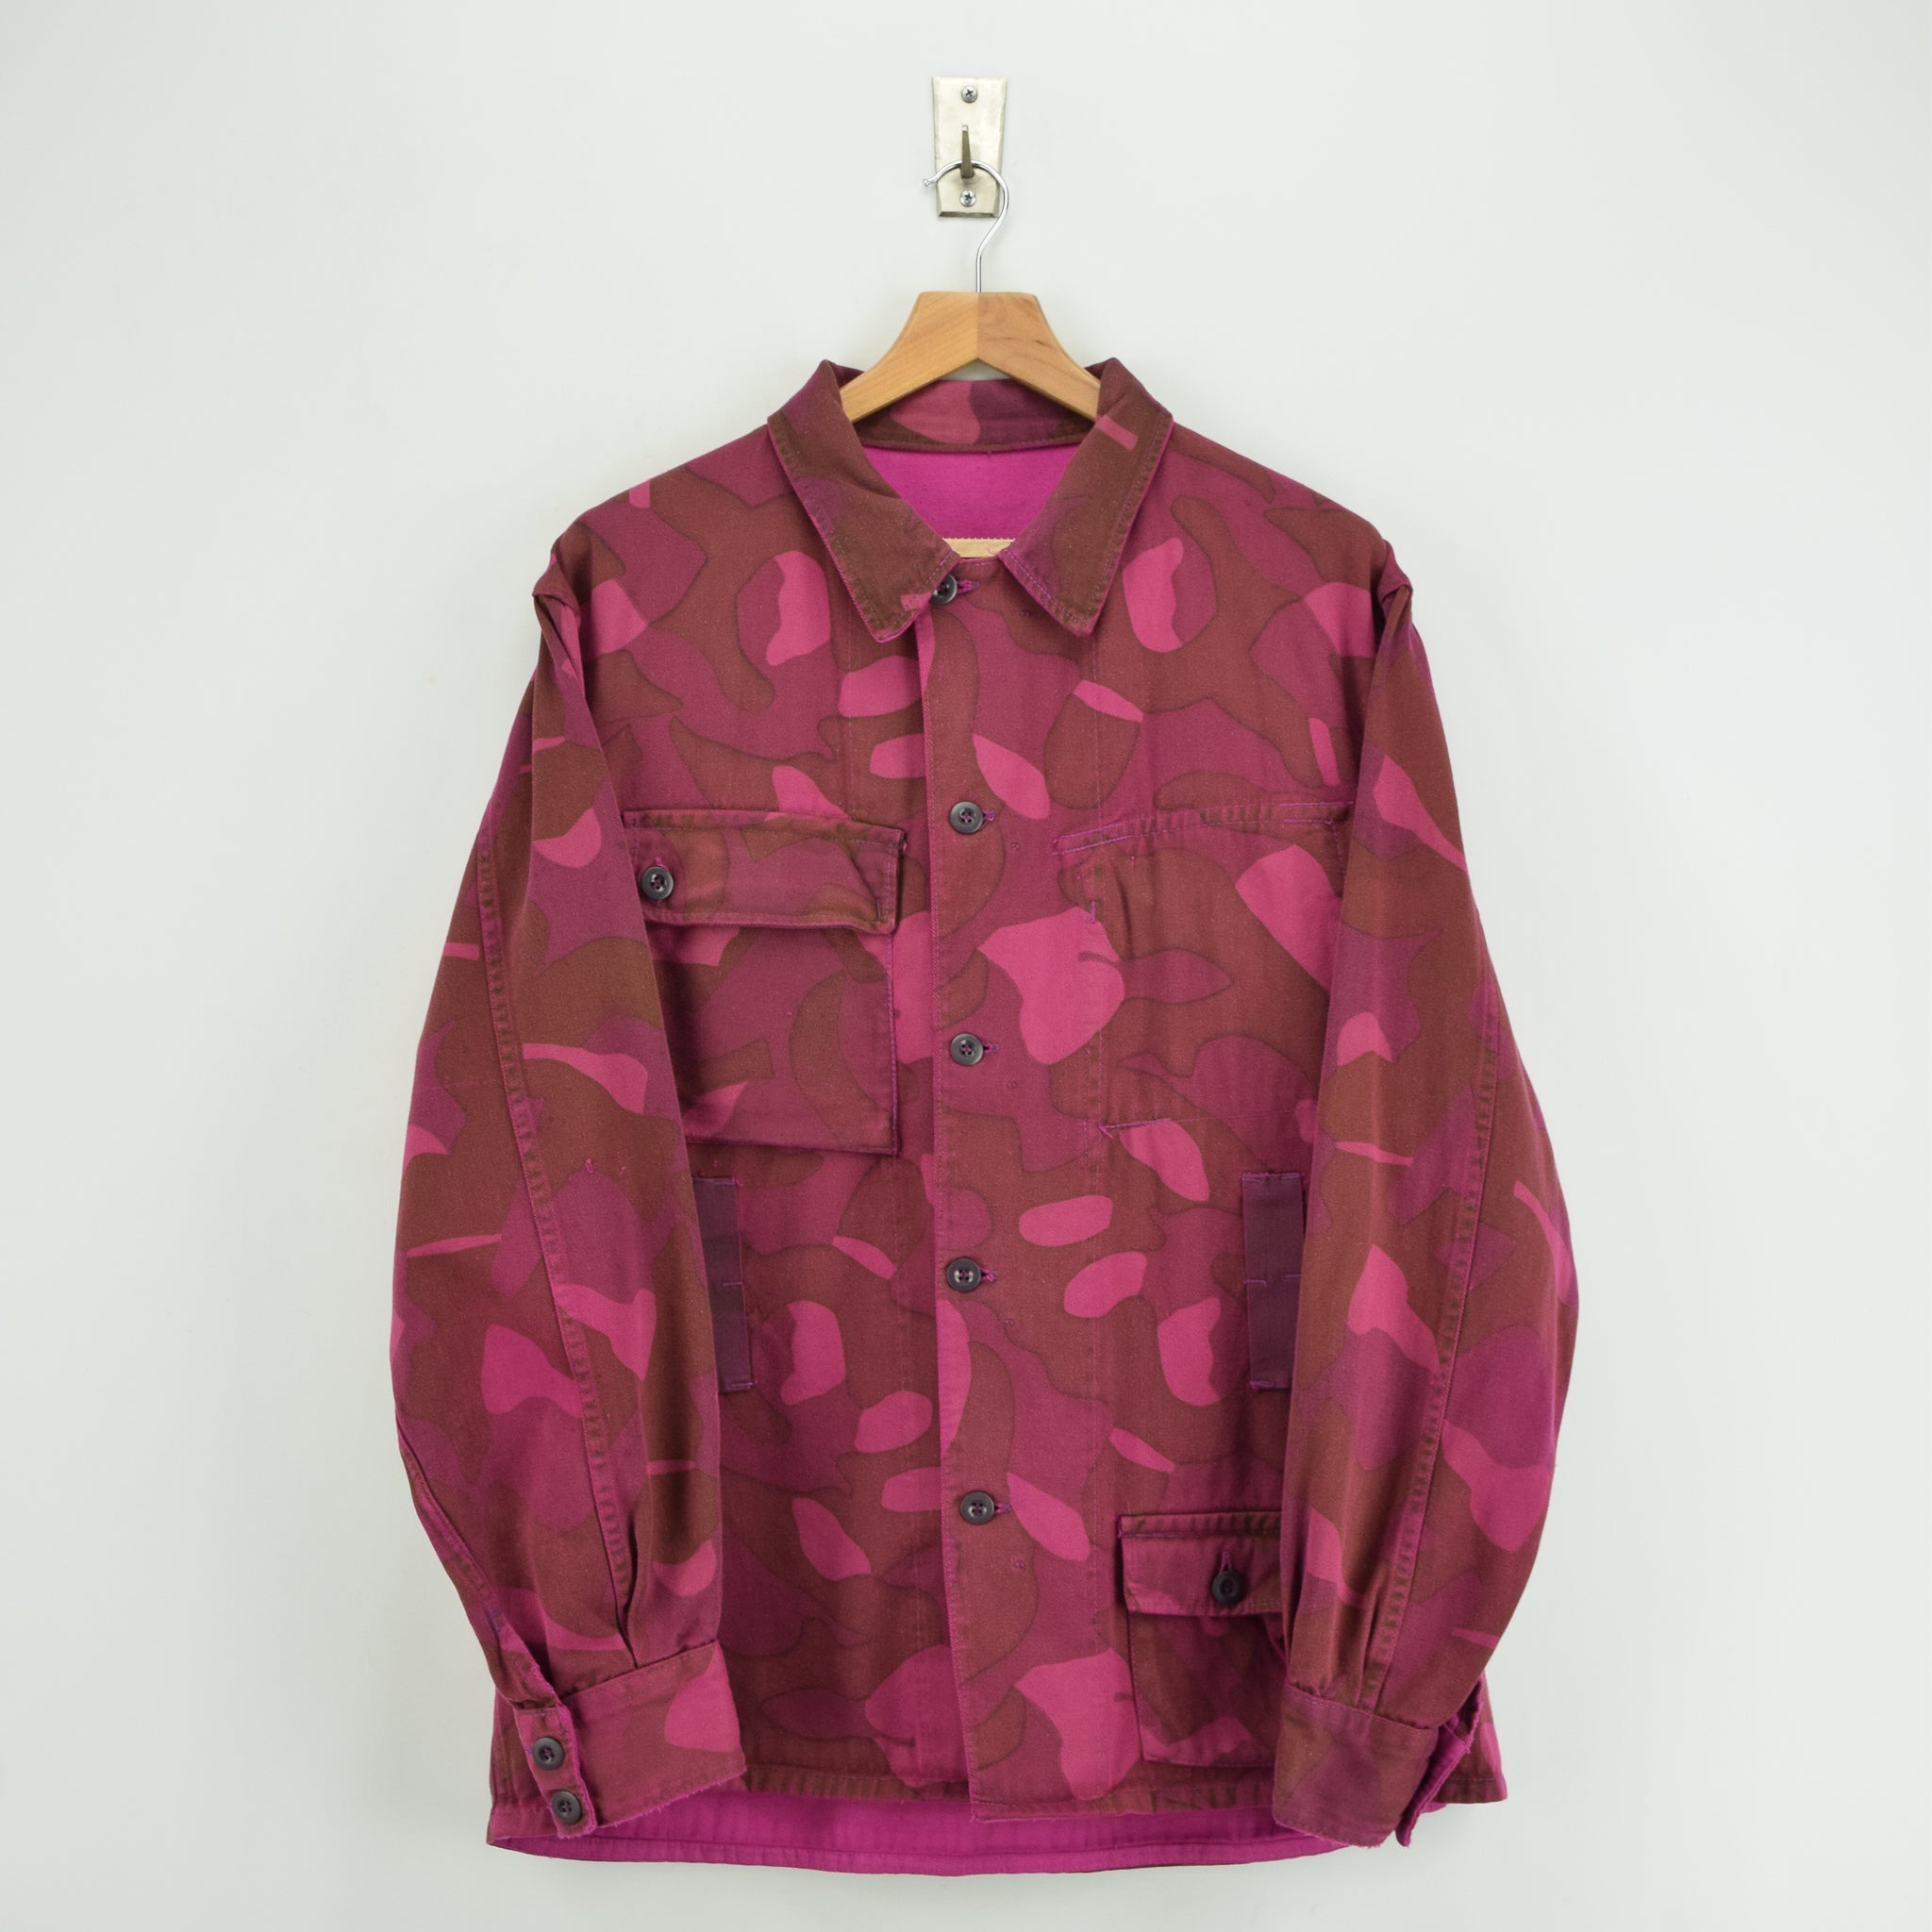 Vintage 60s Military Finnish Army Pink Overdyed Camo Mountain Field Jacket L FRONT